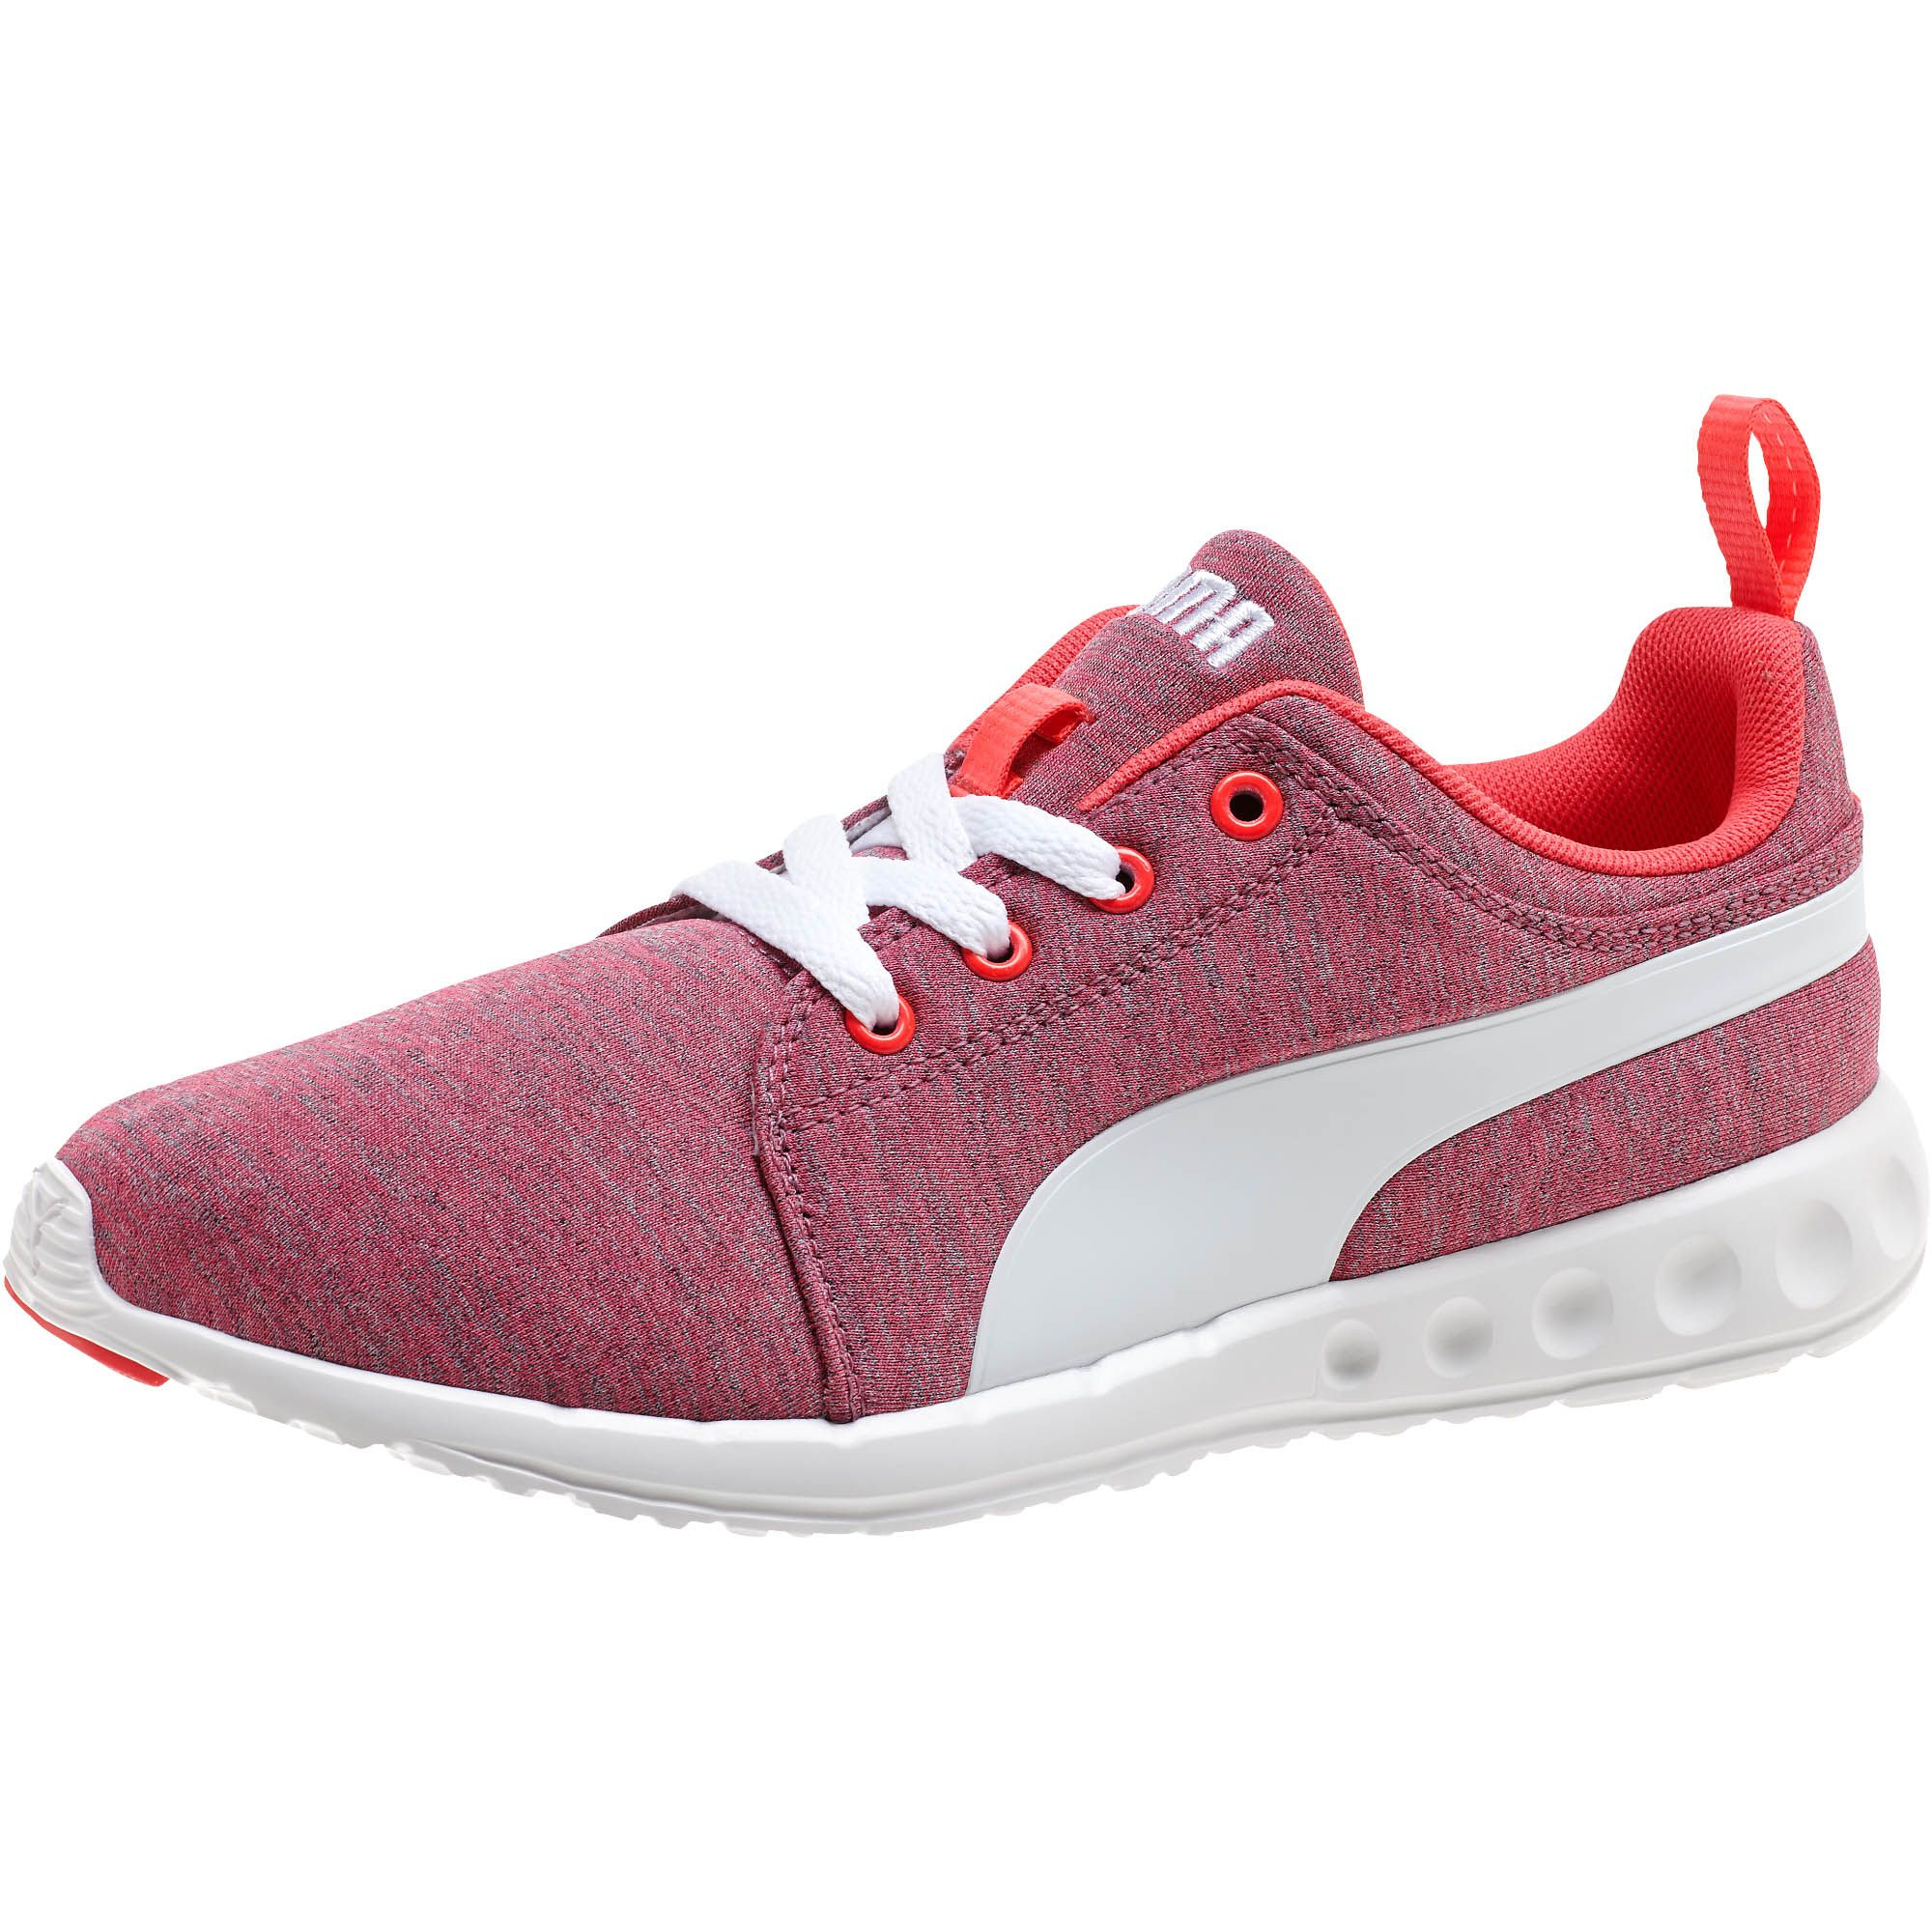 Lyst - PUMA Carson Runner Heather Women s Running Shoes in Red ebb114cd218f